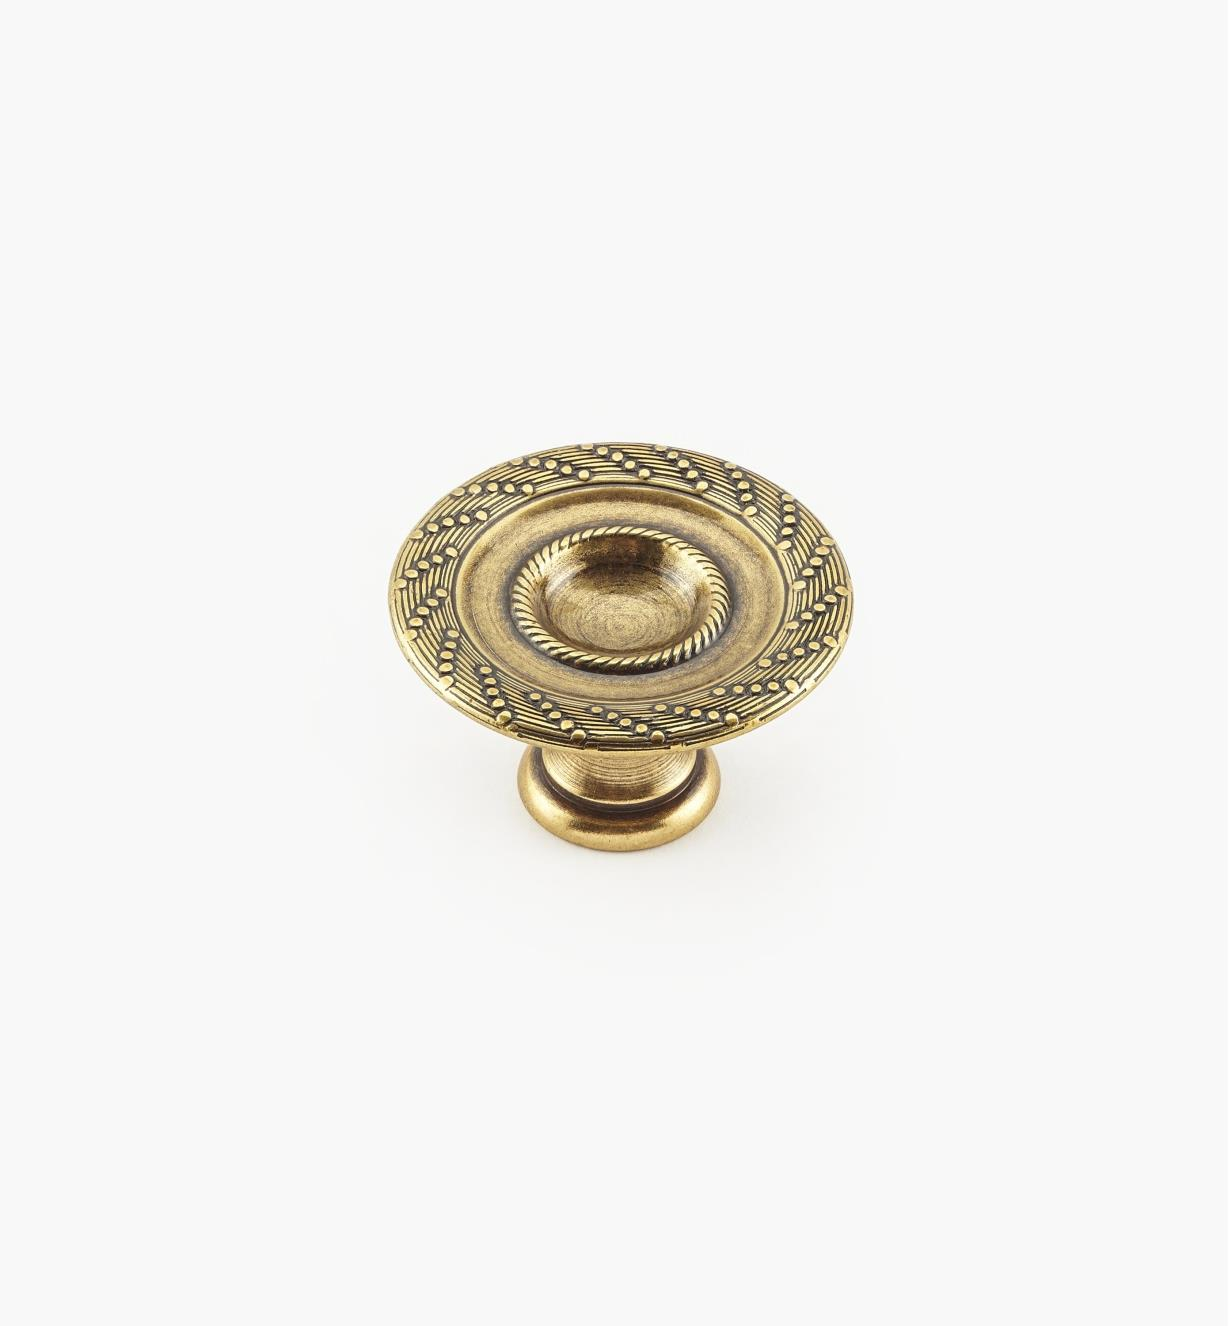 01A9135 - 35mm x 20mm Rope/Reed Burnished Bronze Knob